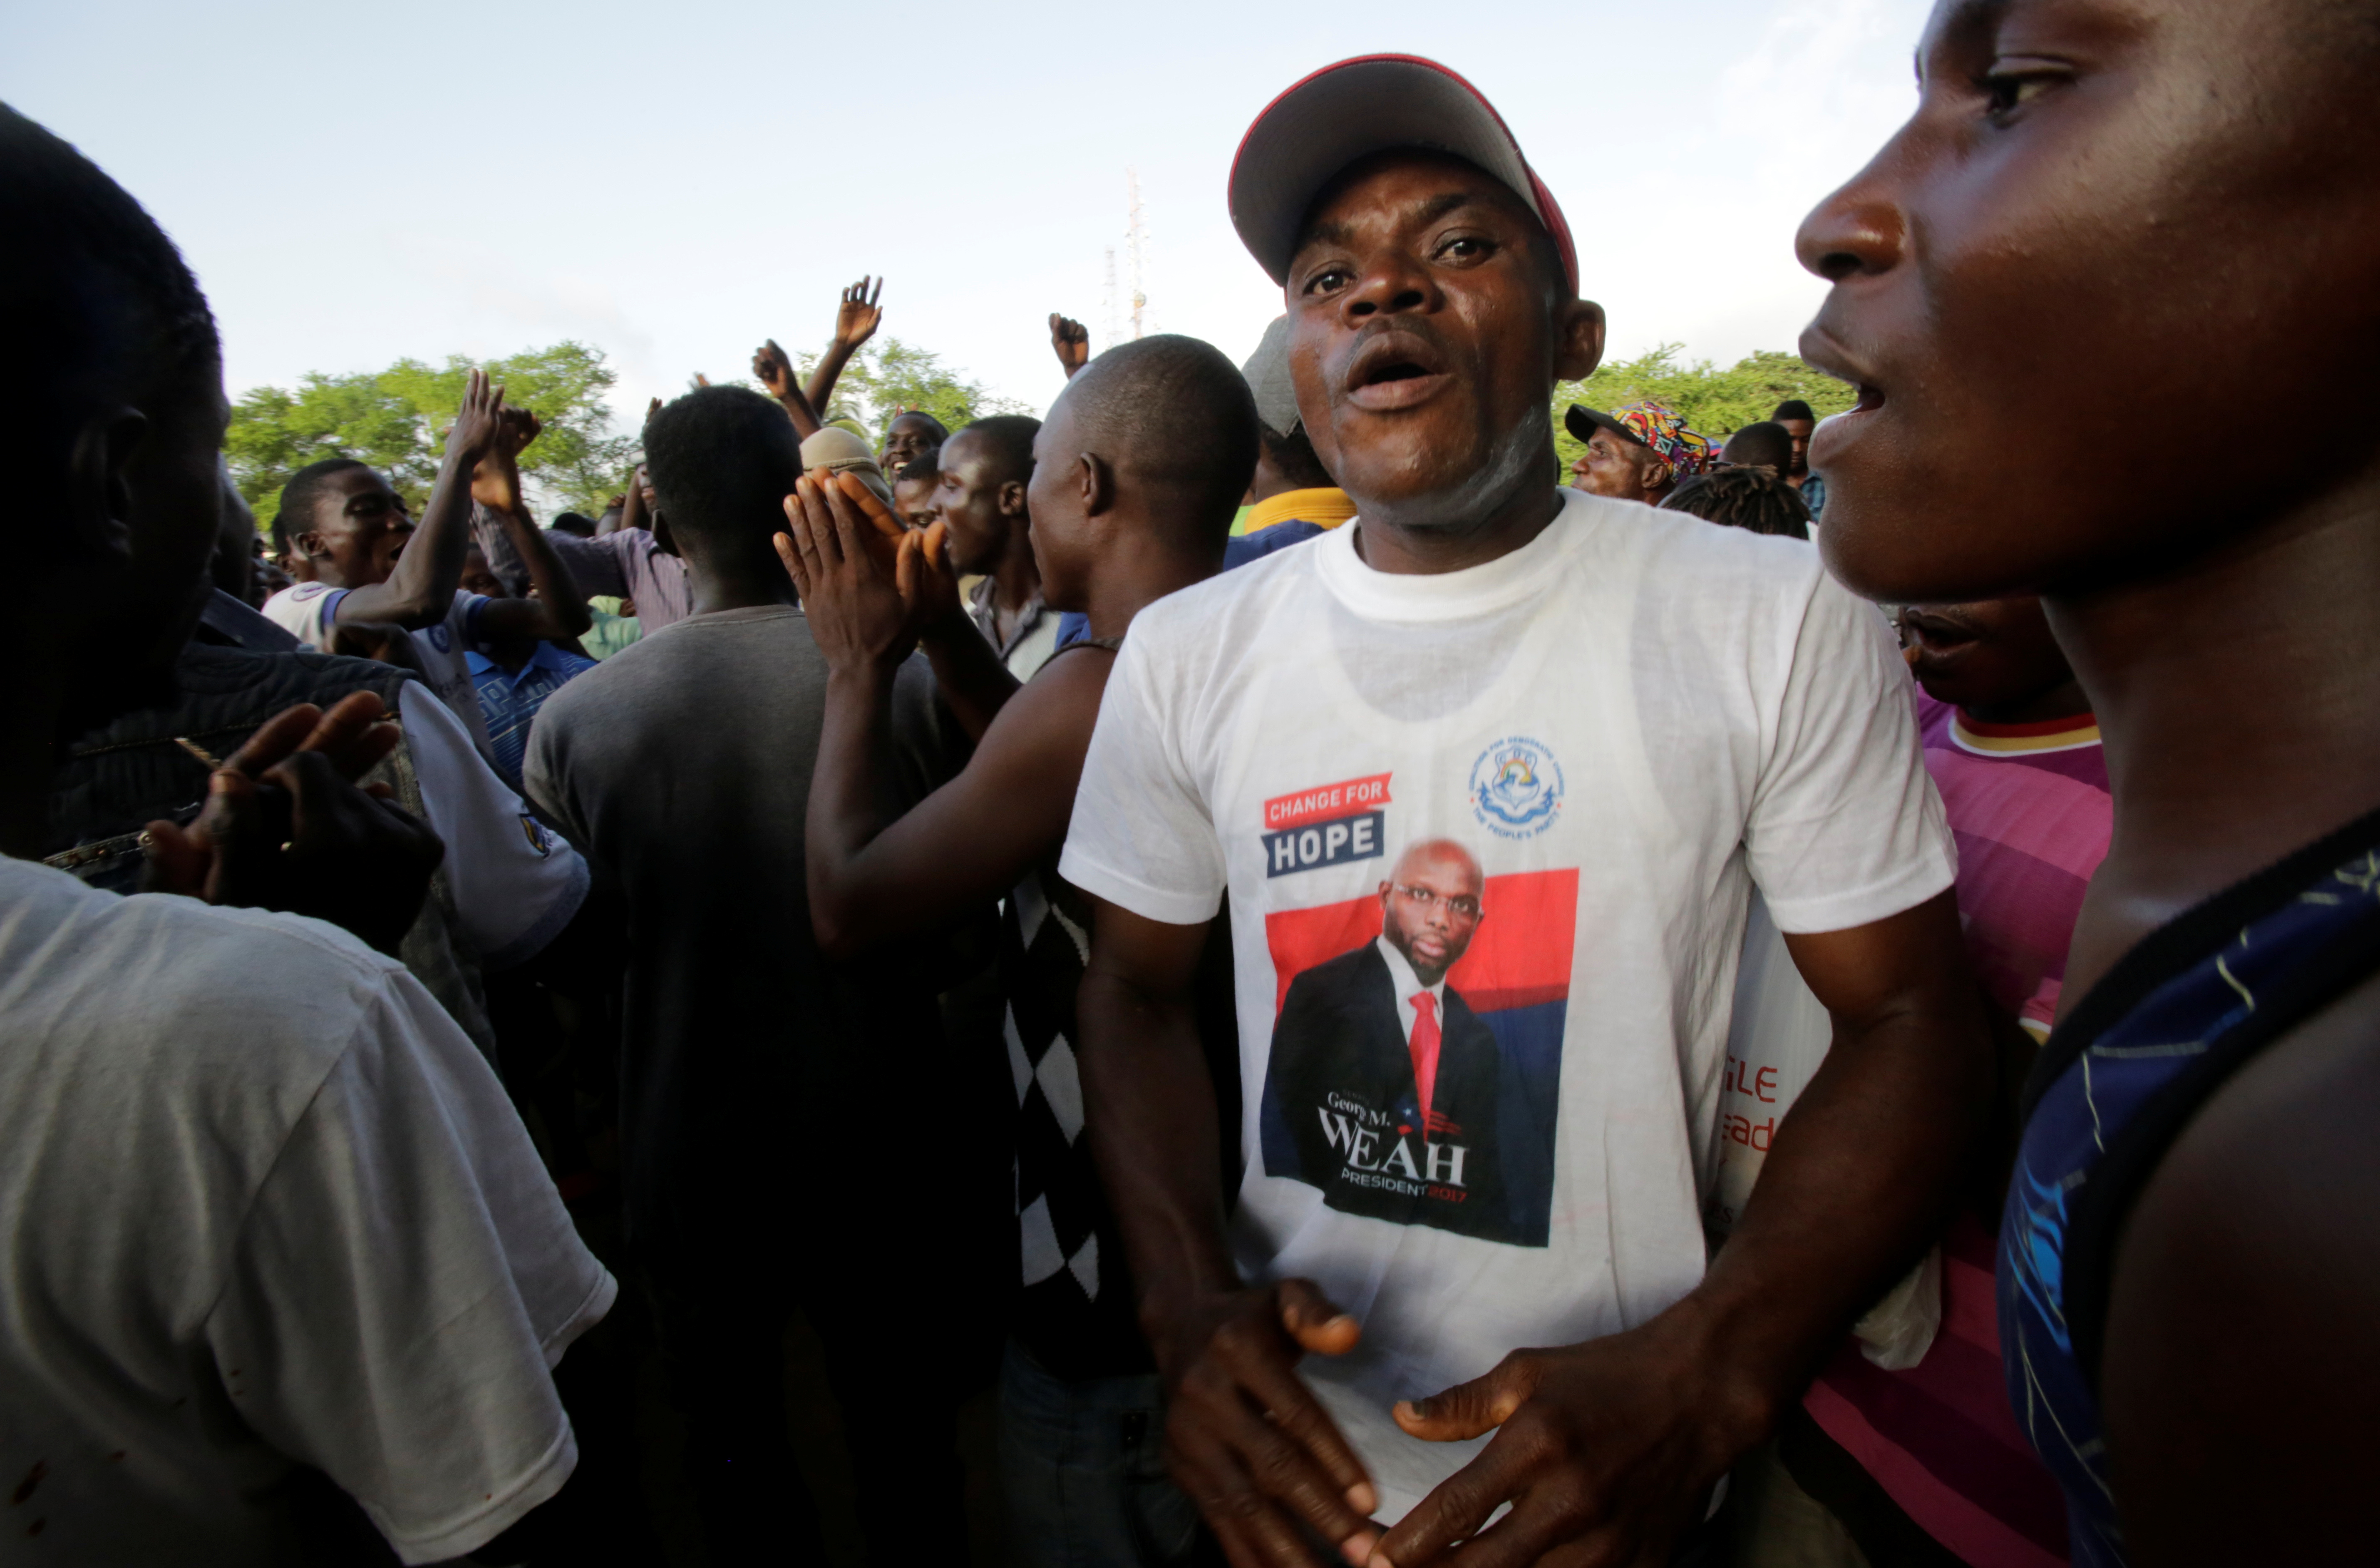 Supporters of George Weah, former soccer player and presidential candidate of Congress for Democratic Change (CDC), celebrate after the announcement of the presidential election results on the radio, in Monrovia, Liberia October 19, 2017. REUTERS/Thierry Gouegnon - RC1589A09A80